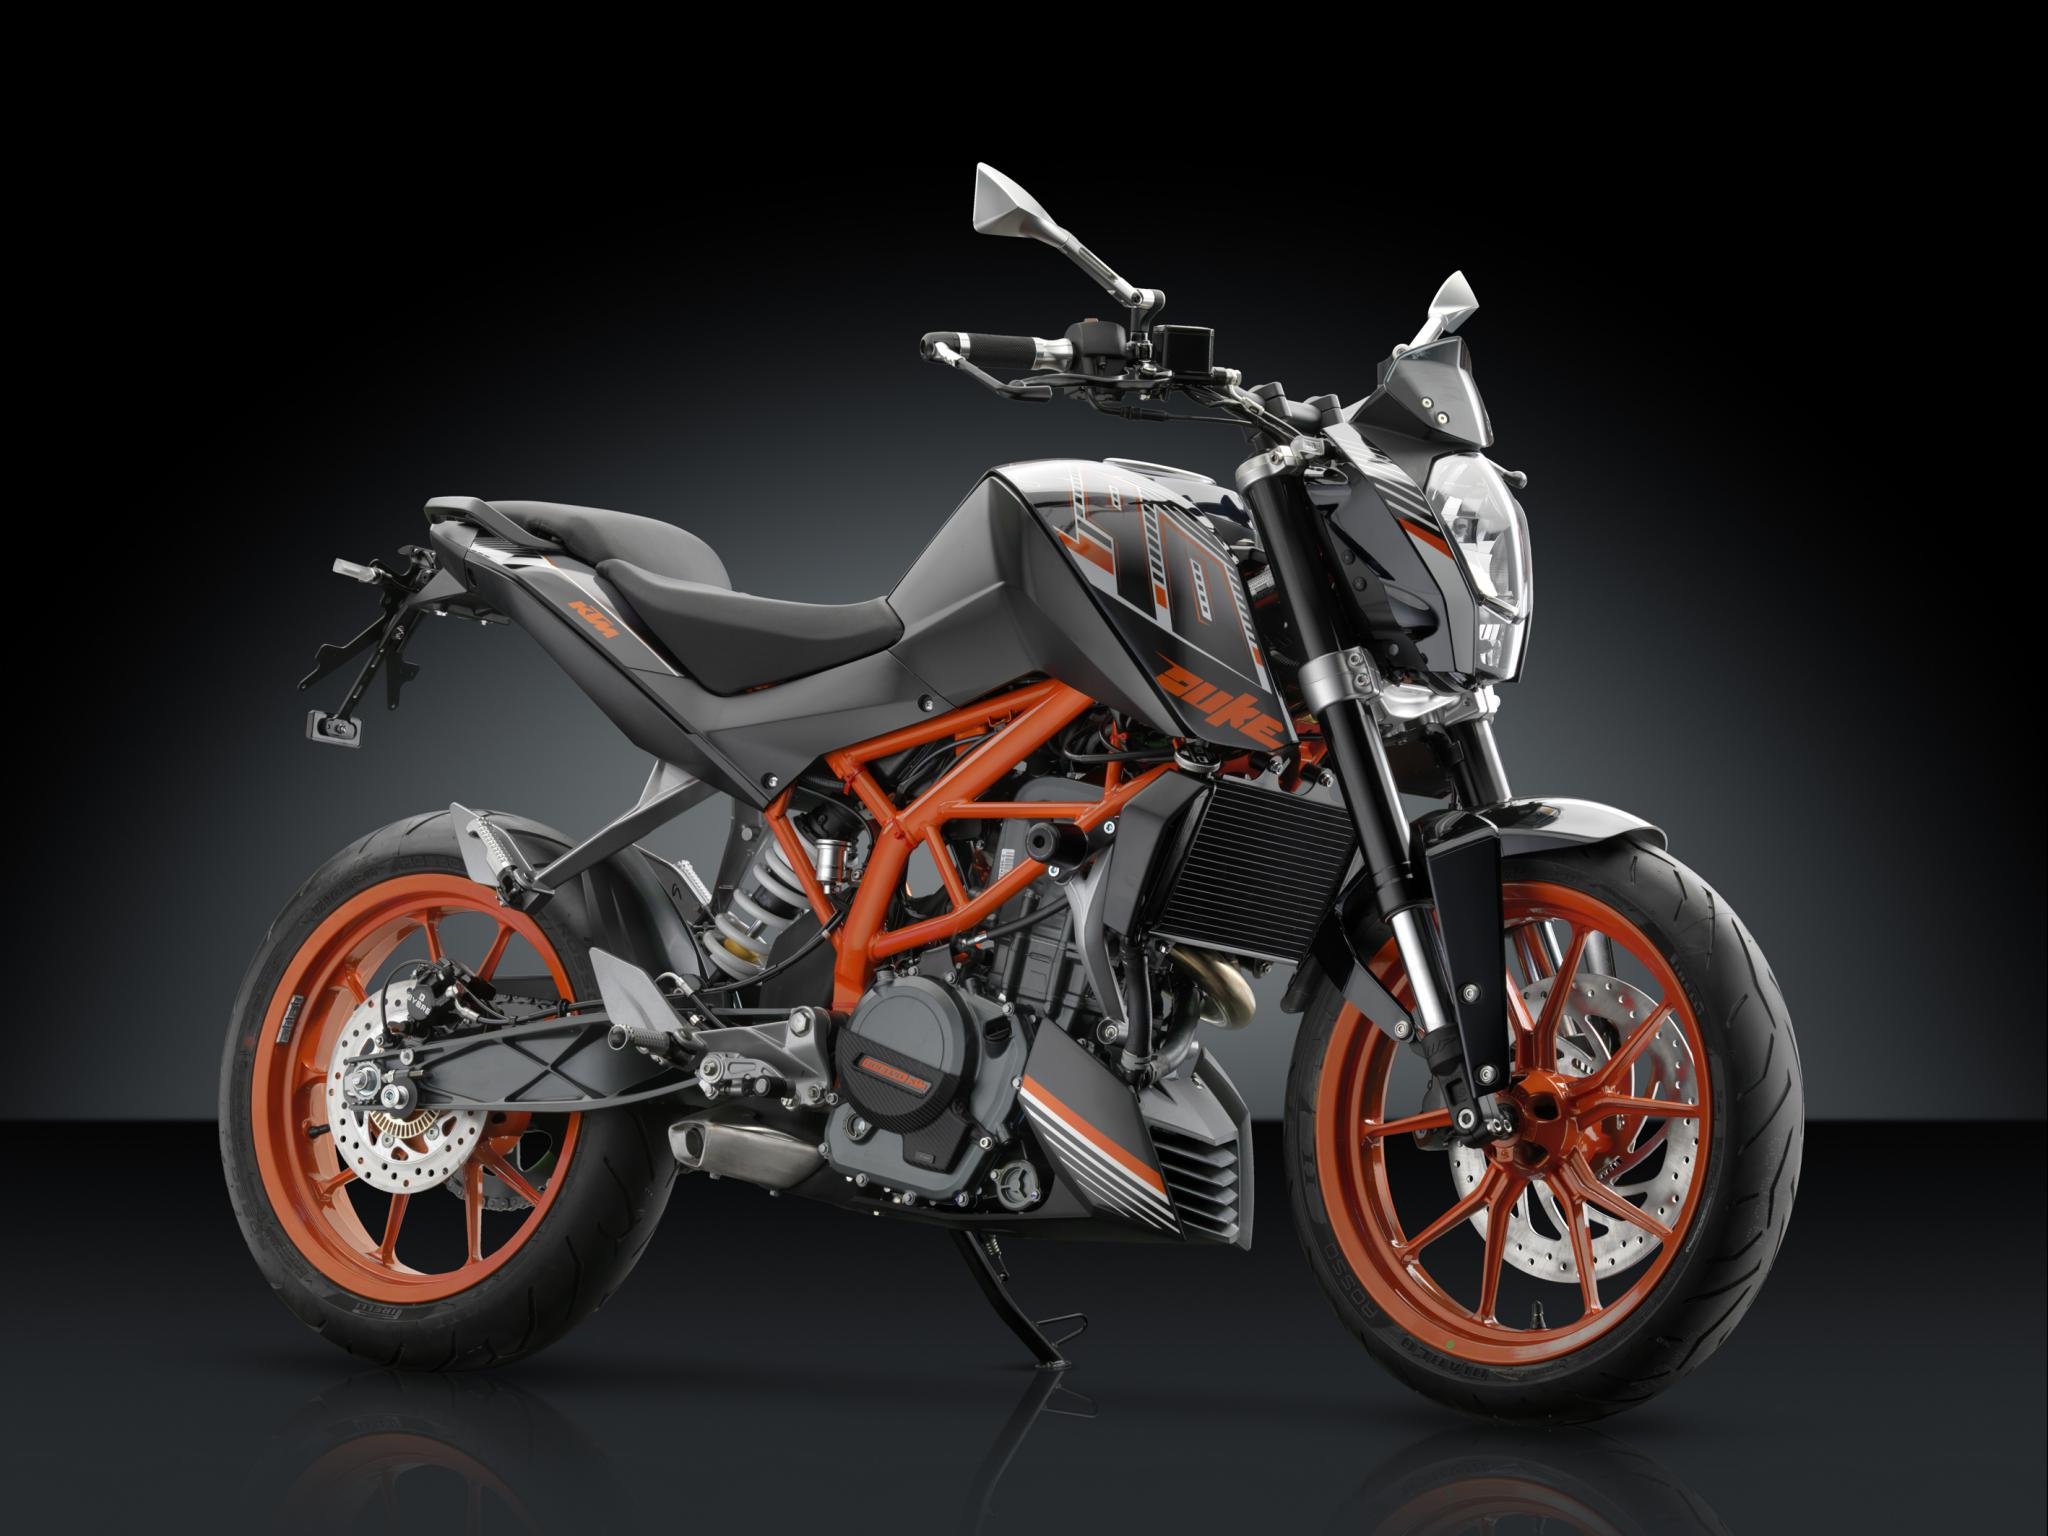 zubeh rlinie f r die ktm 390 duke 1290 super duke r 2016. Black Bedroom Furniture Sets. Home Design Ideas